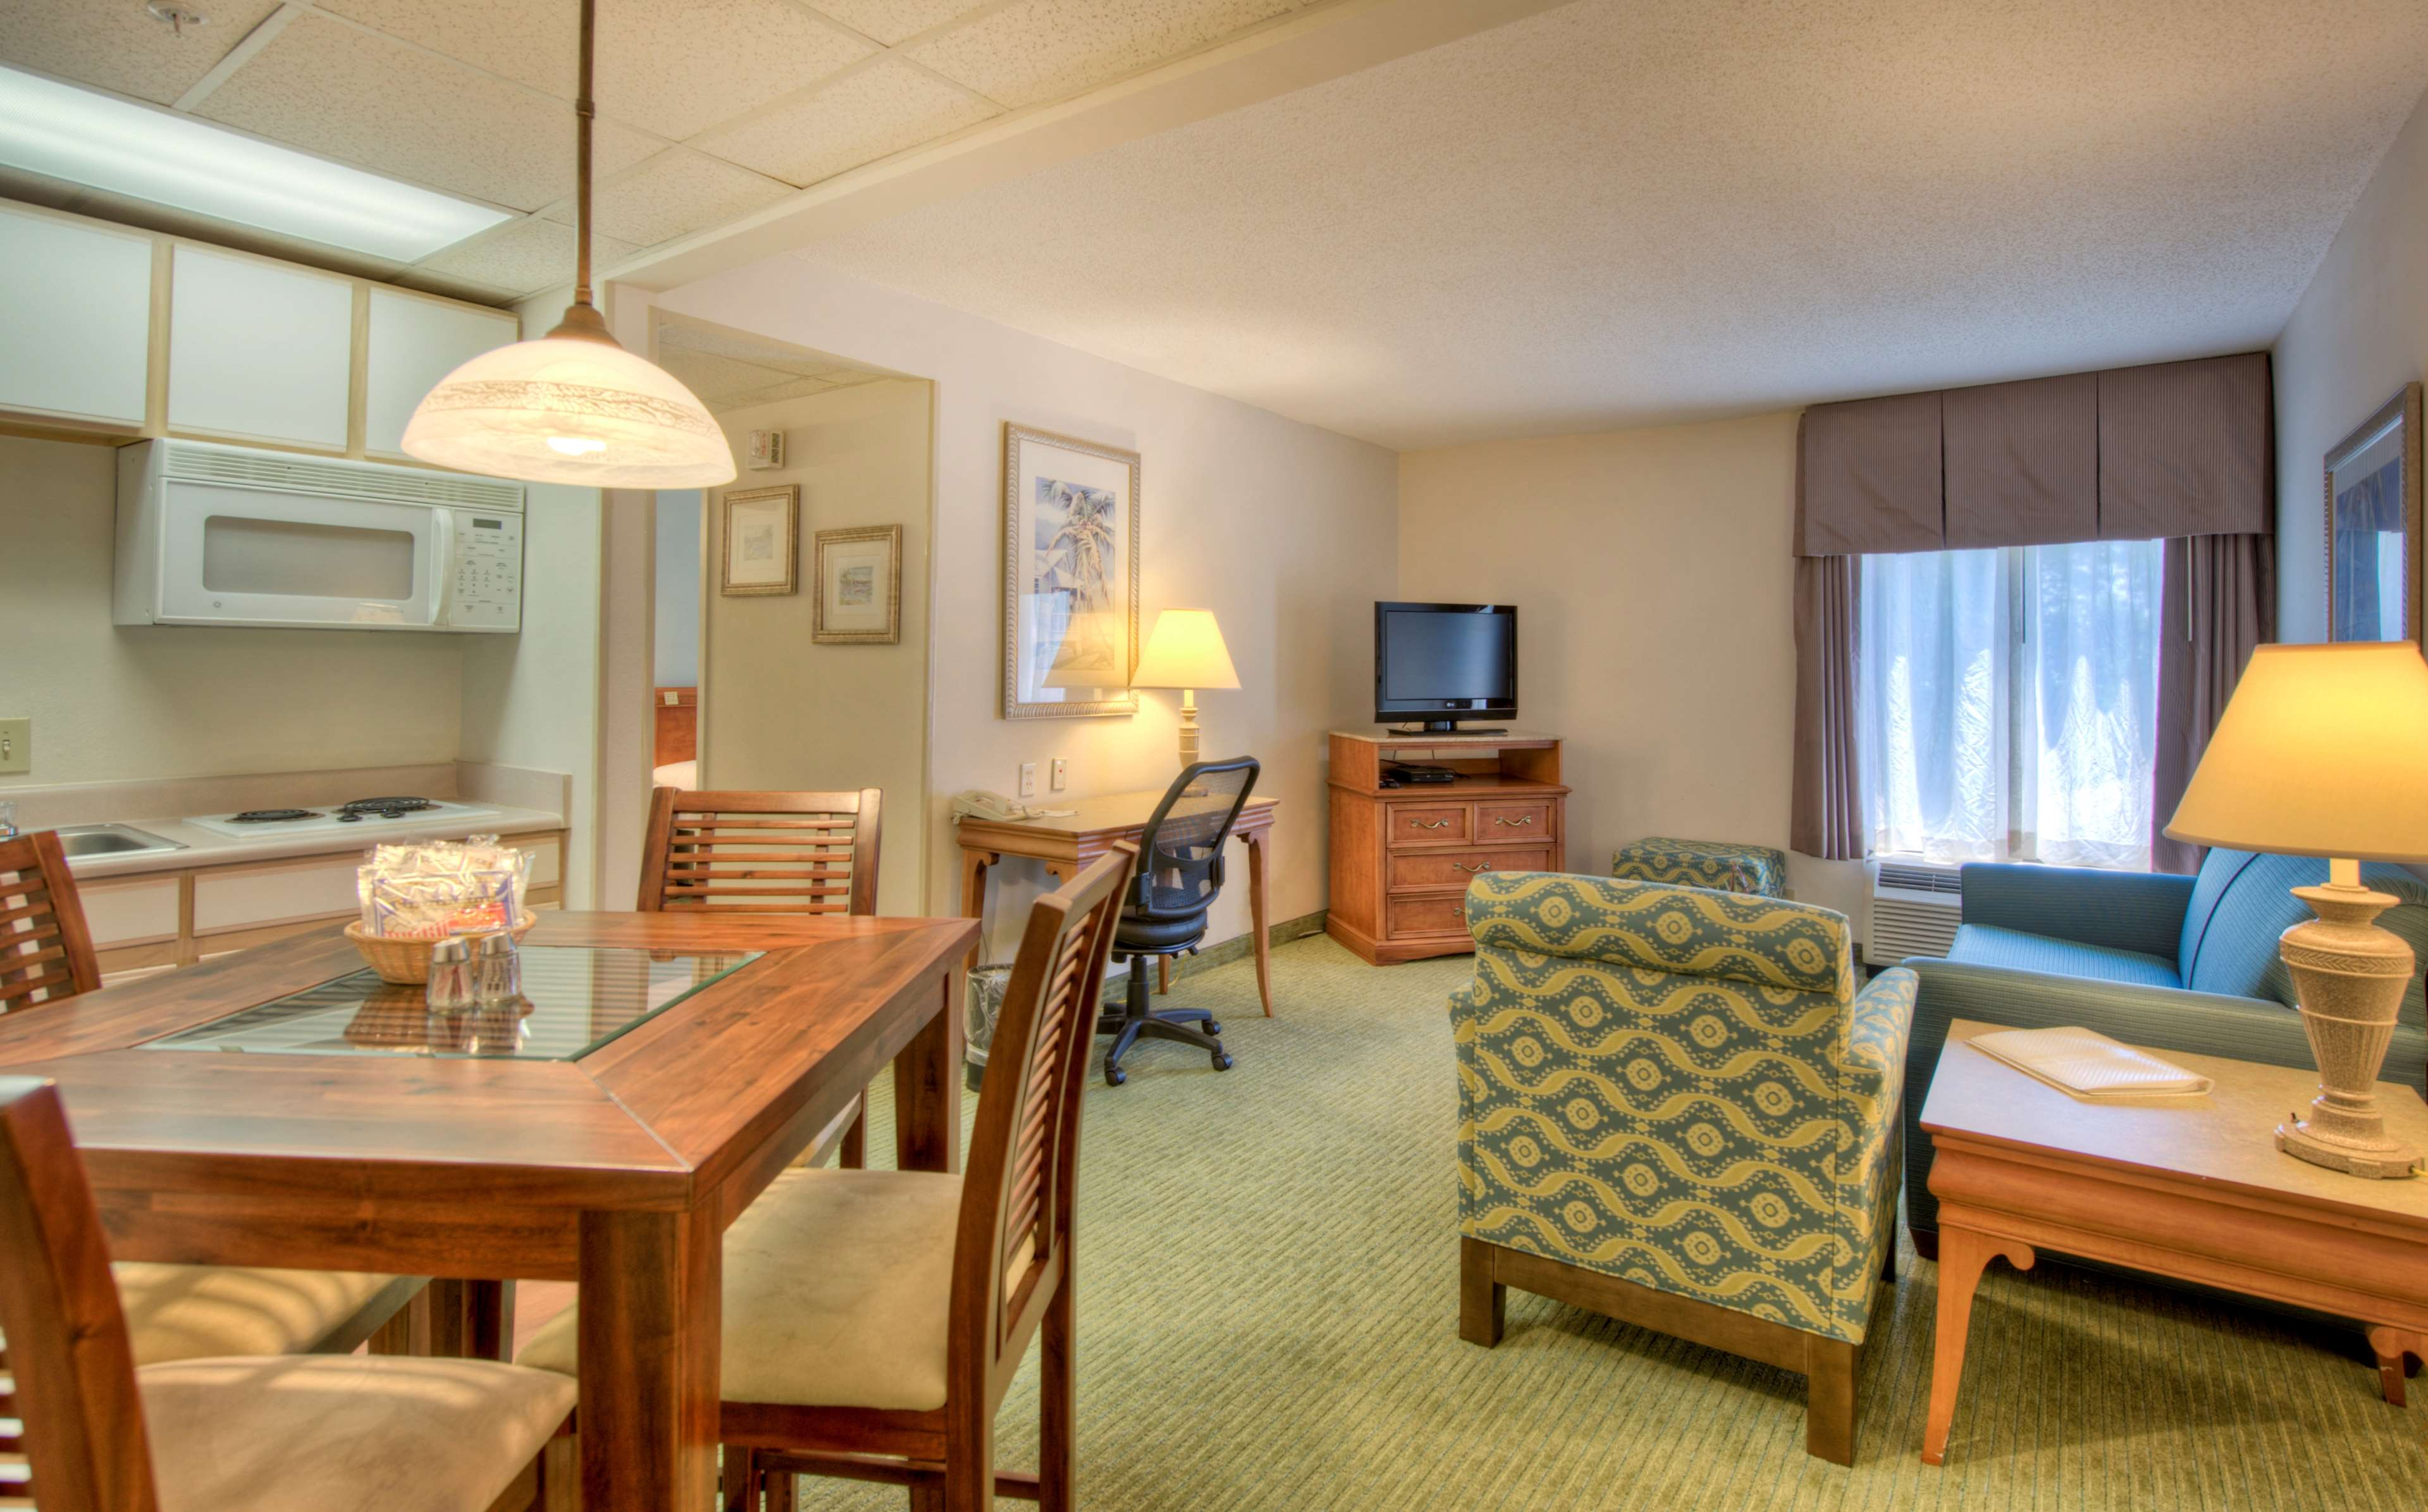 Hampton Inn & Suites Wilmington/Wrightsville Beach image 25